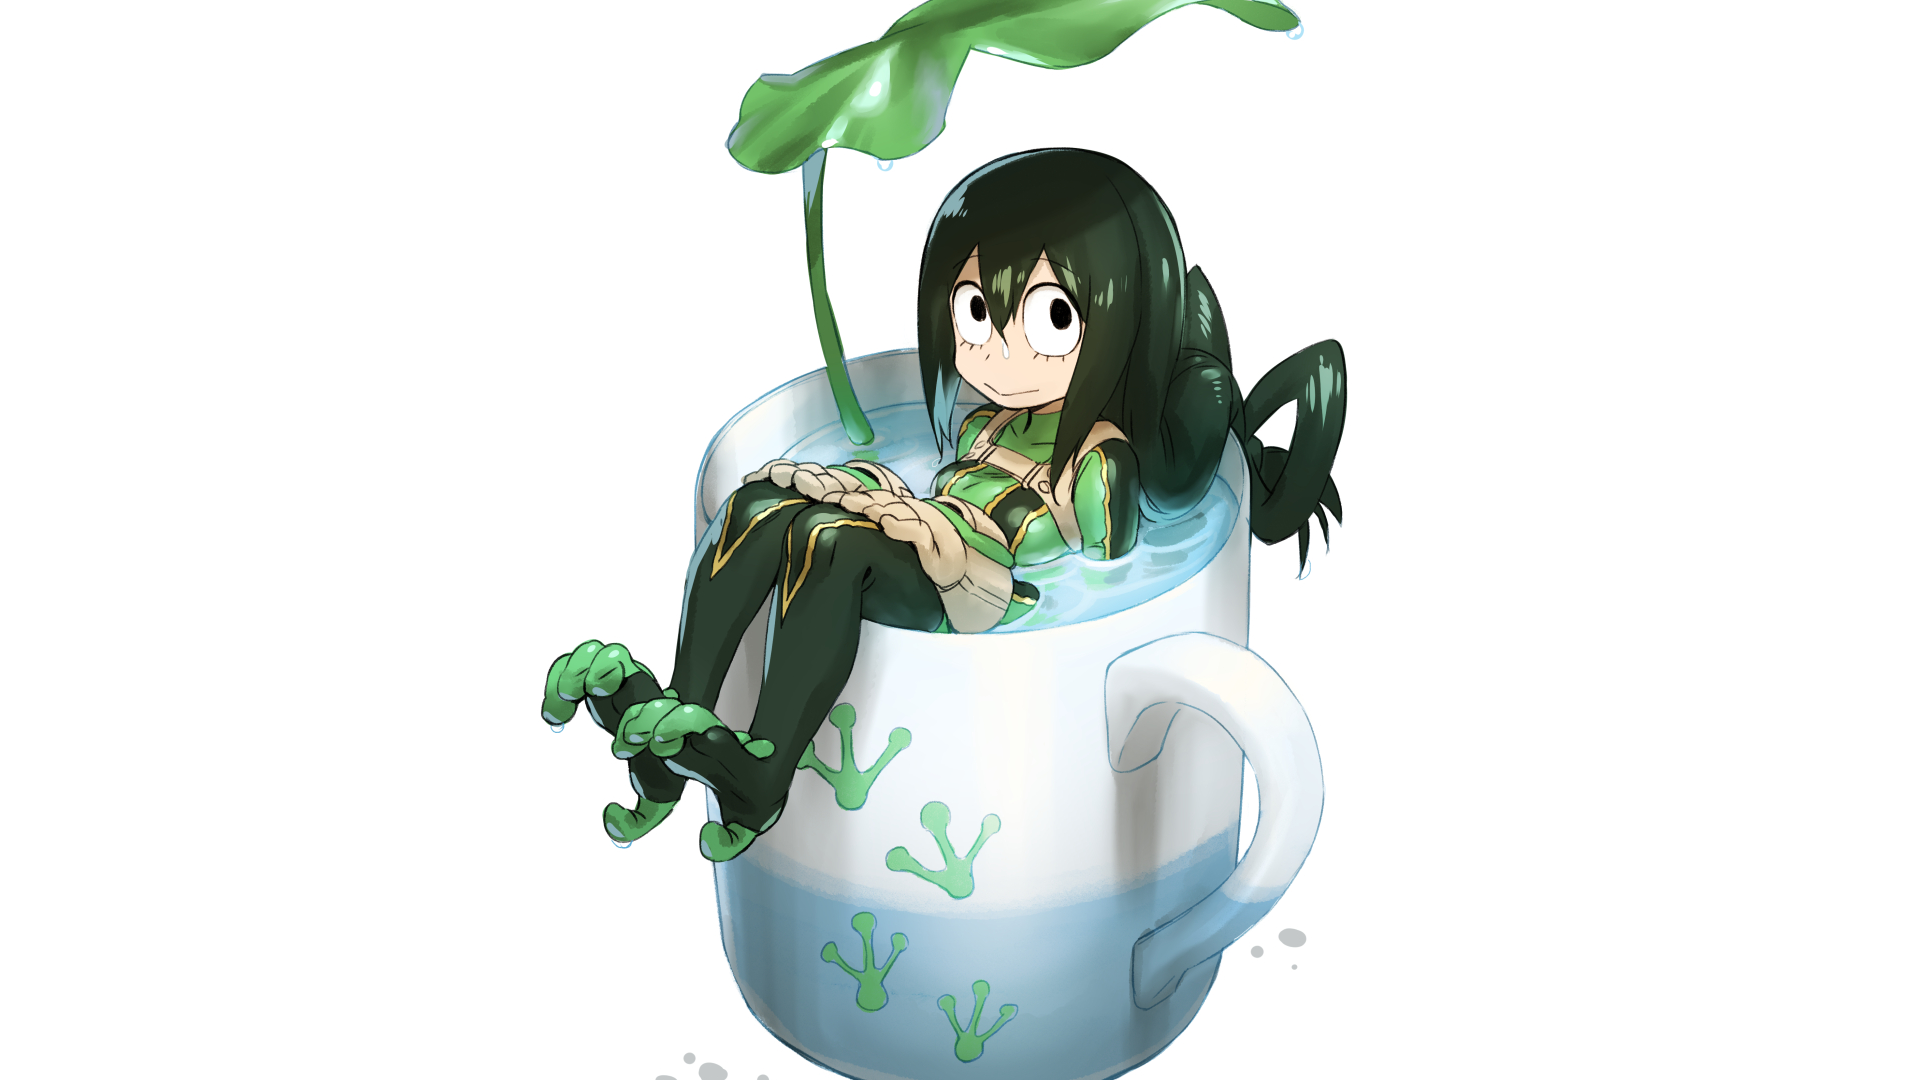 Steam Workshop Boku No Hero Academia Asui Tsuyu Froppy